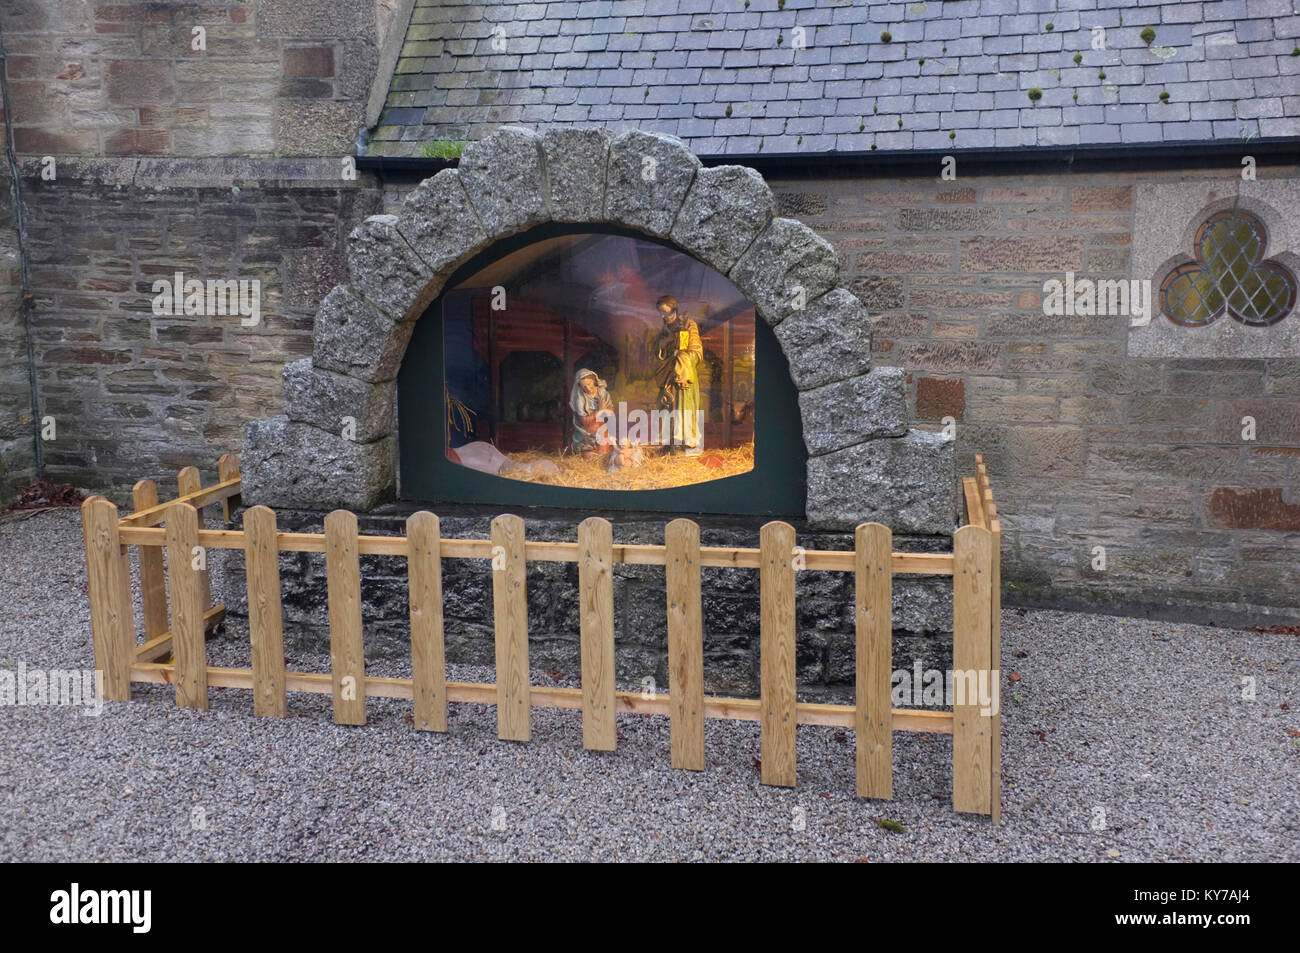 Fenced off Nativity scene in Falmouth, Cornwall. - Stock Image